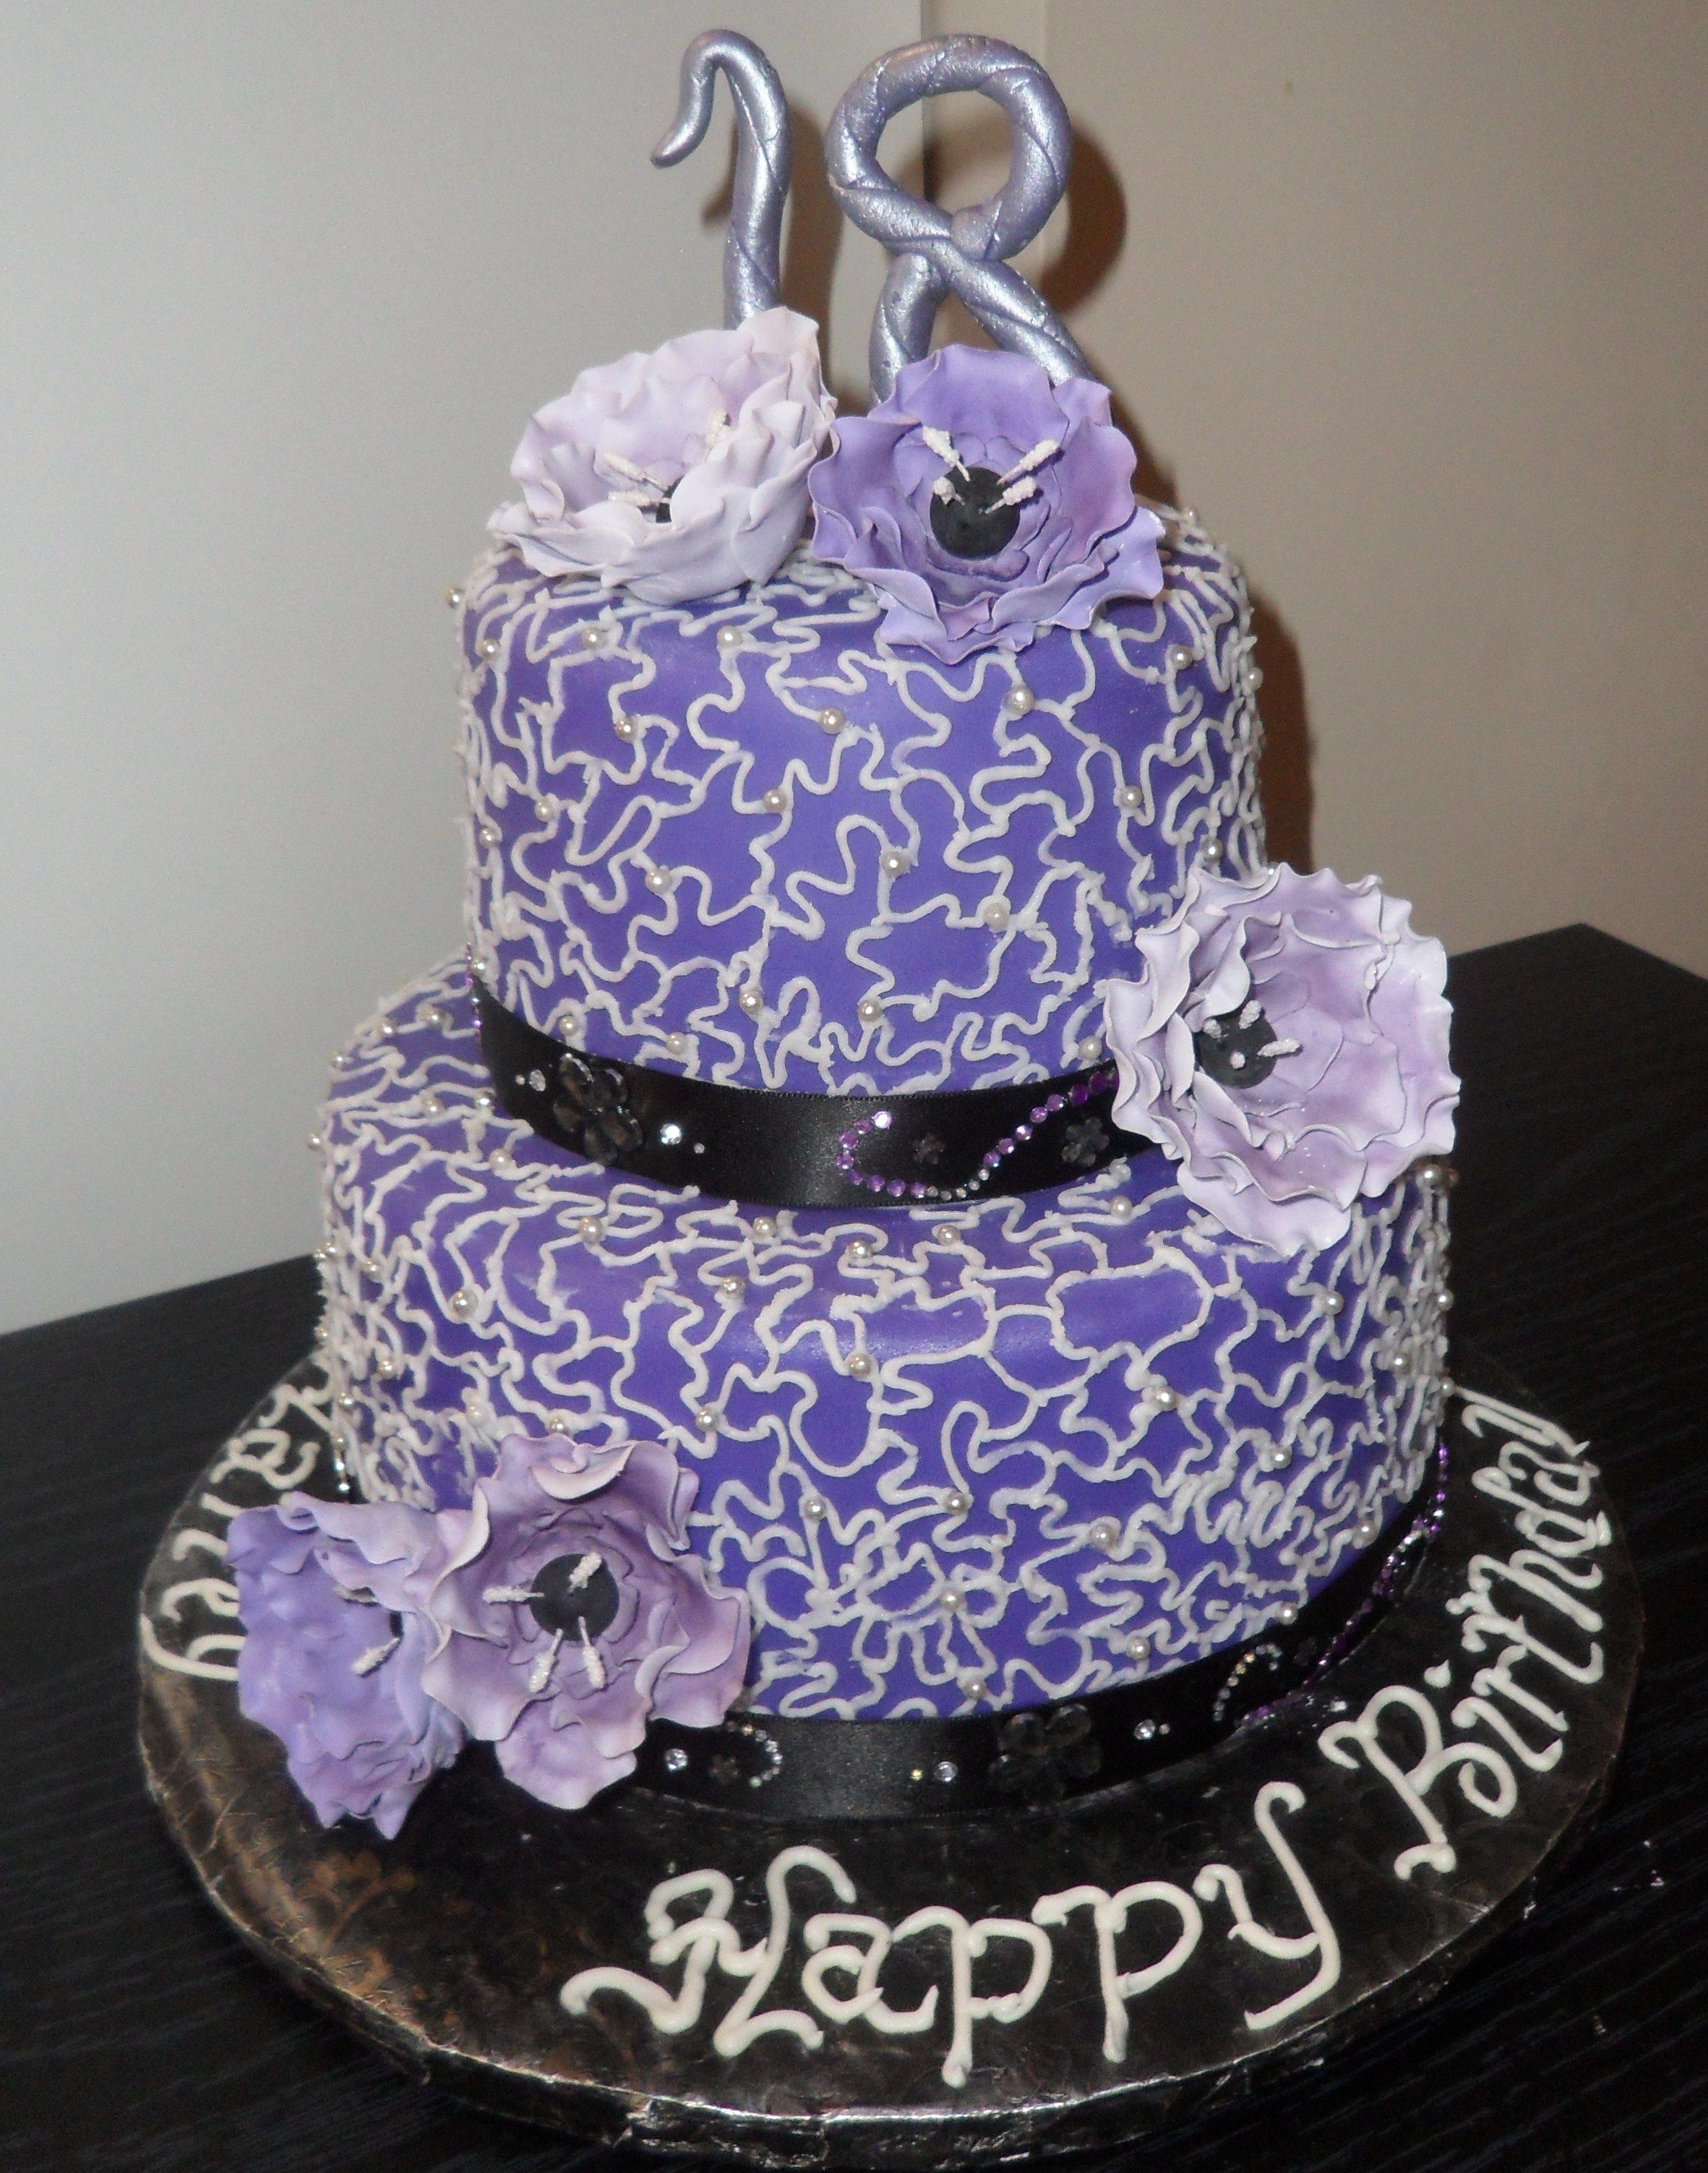 18th birthday cake with purple fantasy flowers cakes for 18th cake decoration